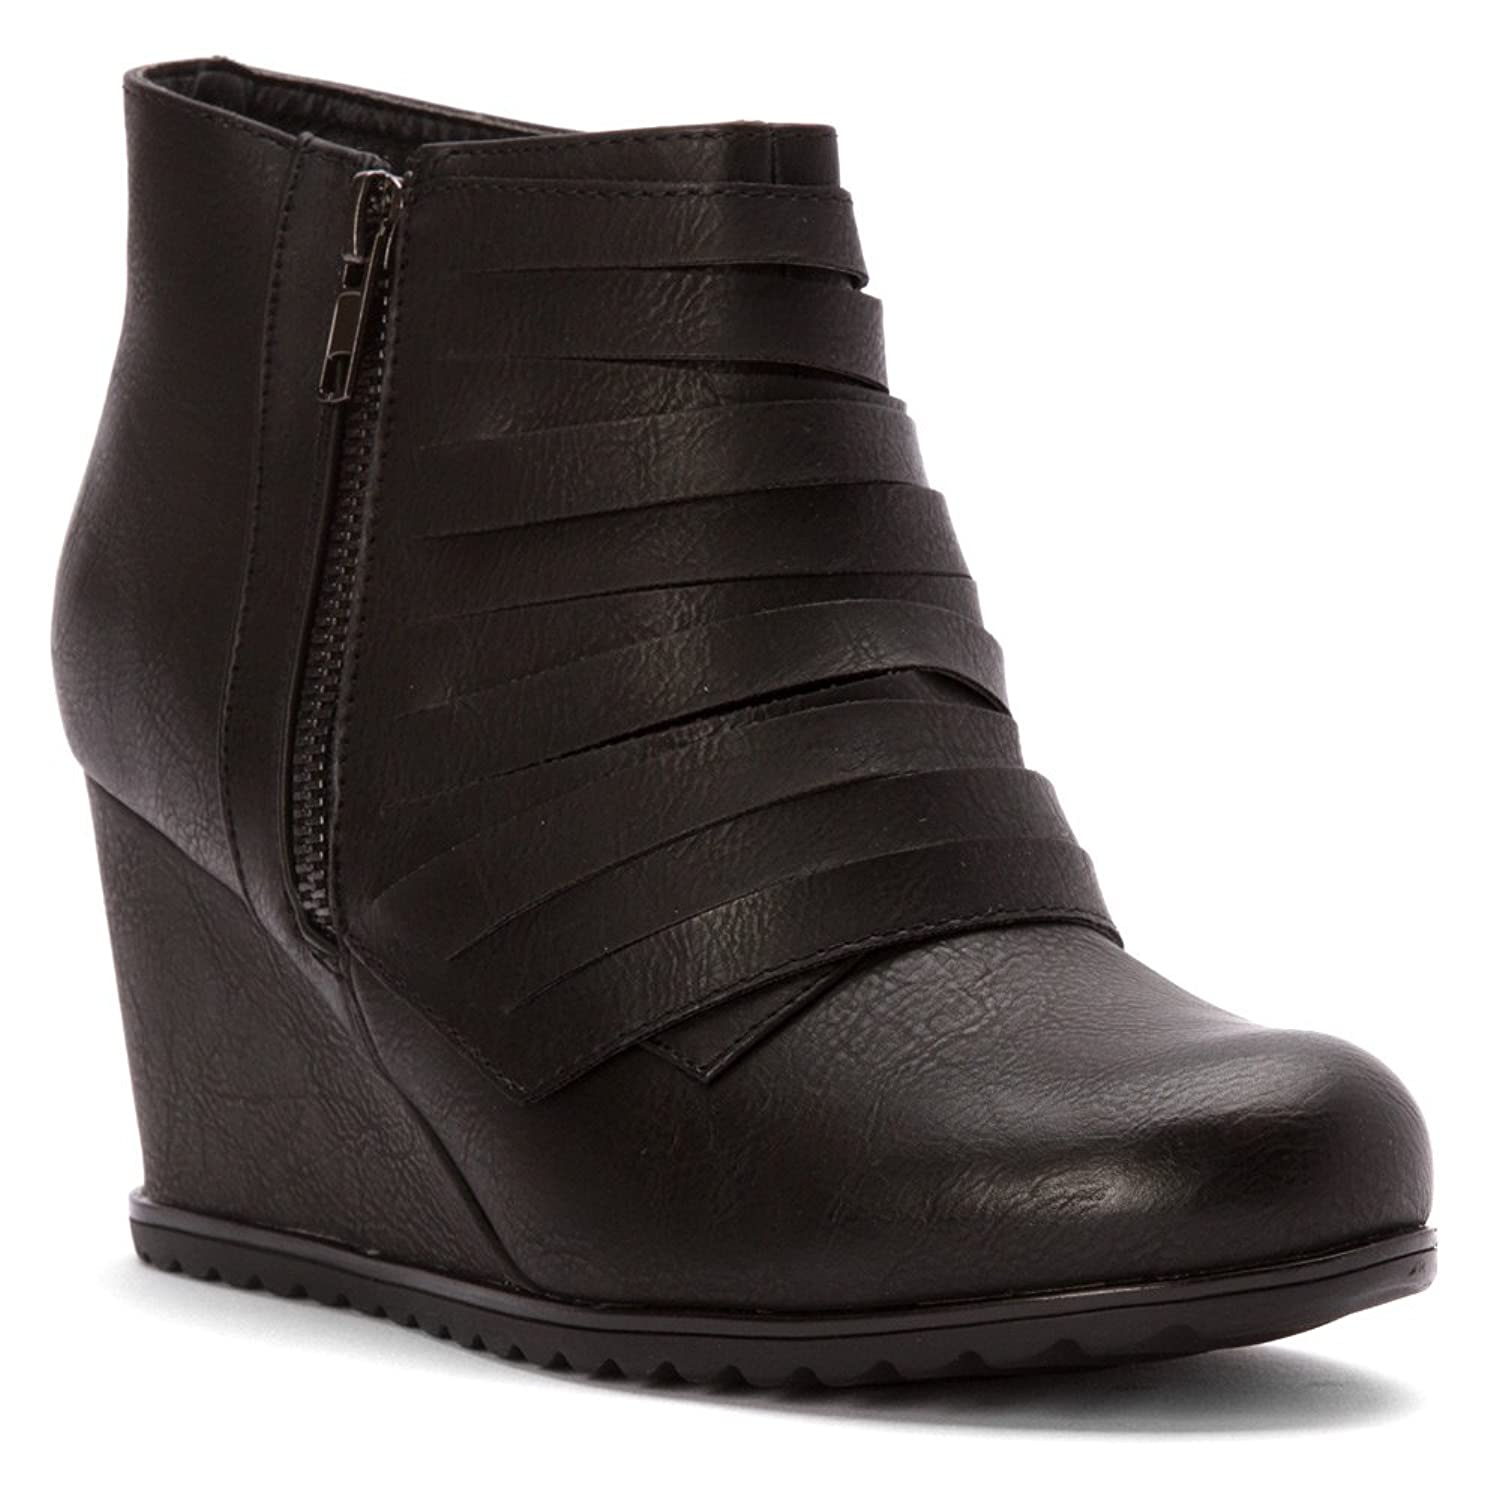 2 Lips Too Naia Black Wedge Bootie, 5.5 M US